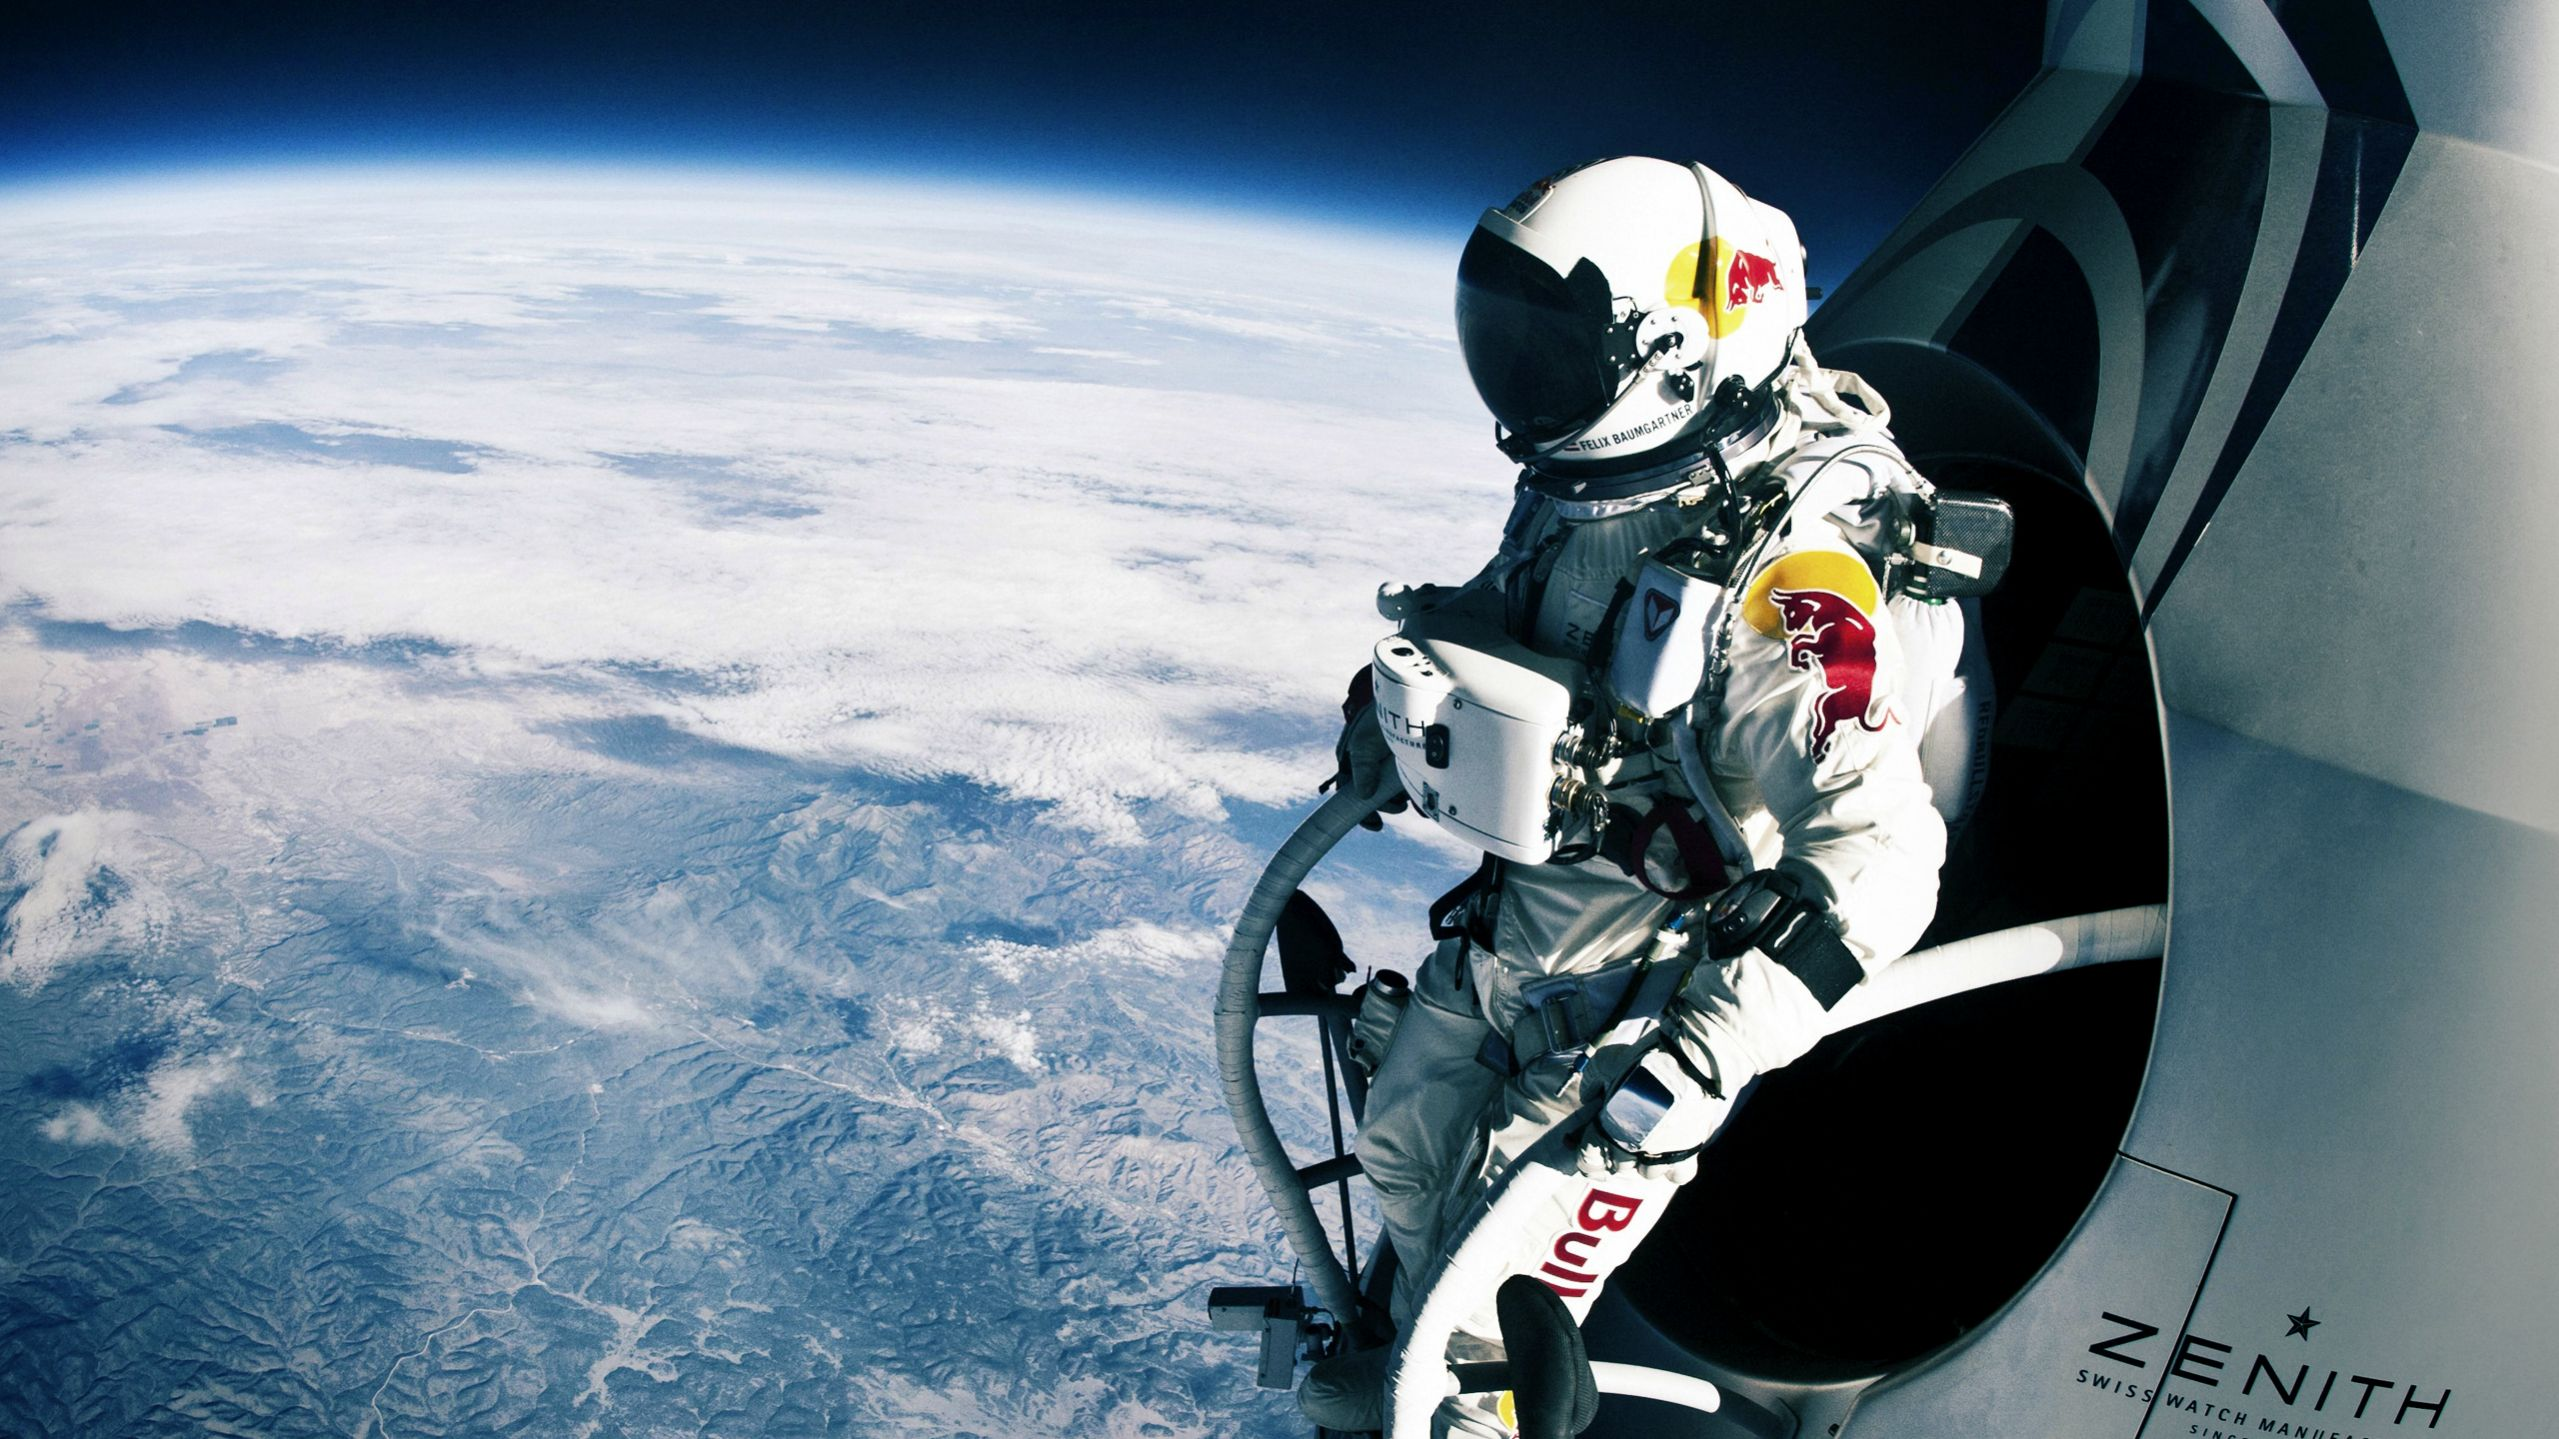 Felix Baumgartner Wallpapers and Background Images   stmednet 2559x1439